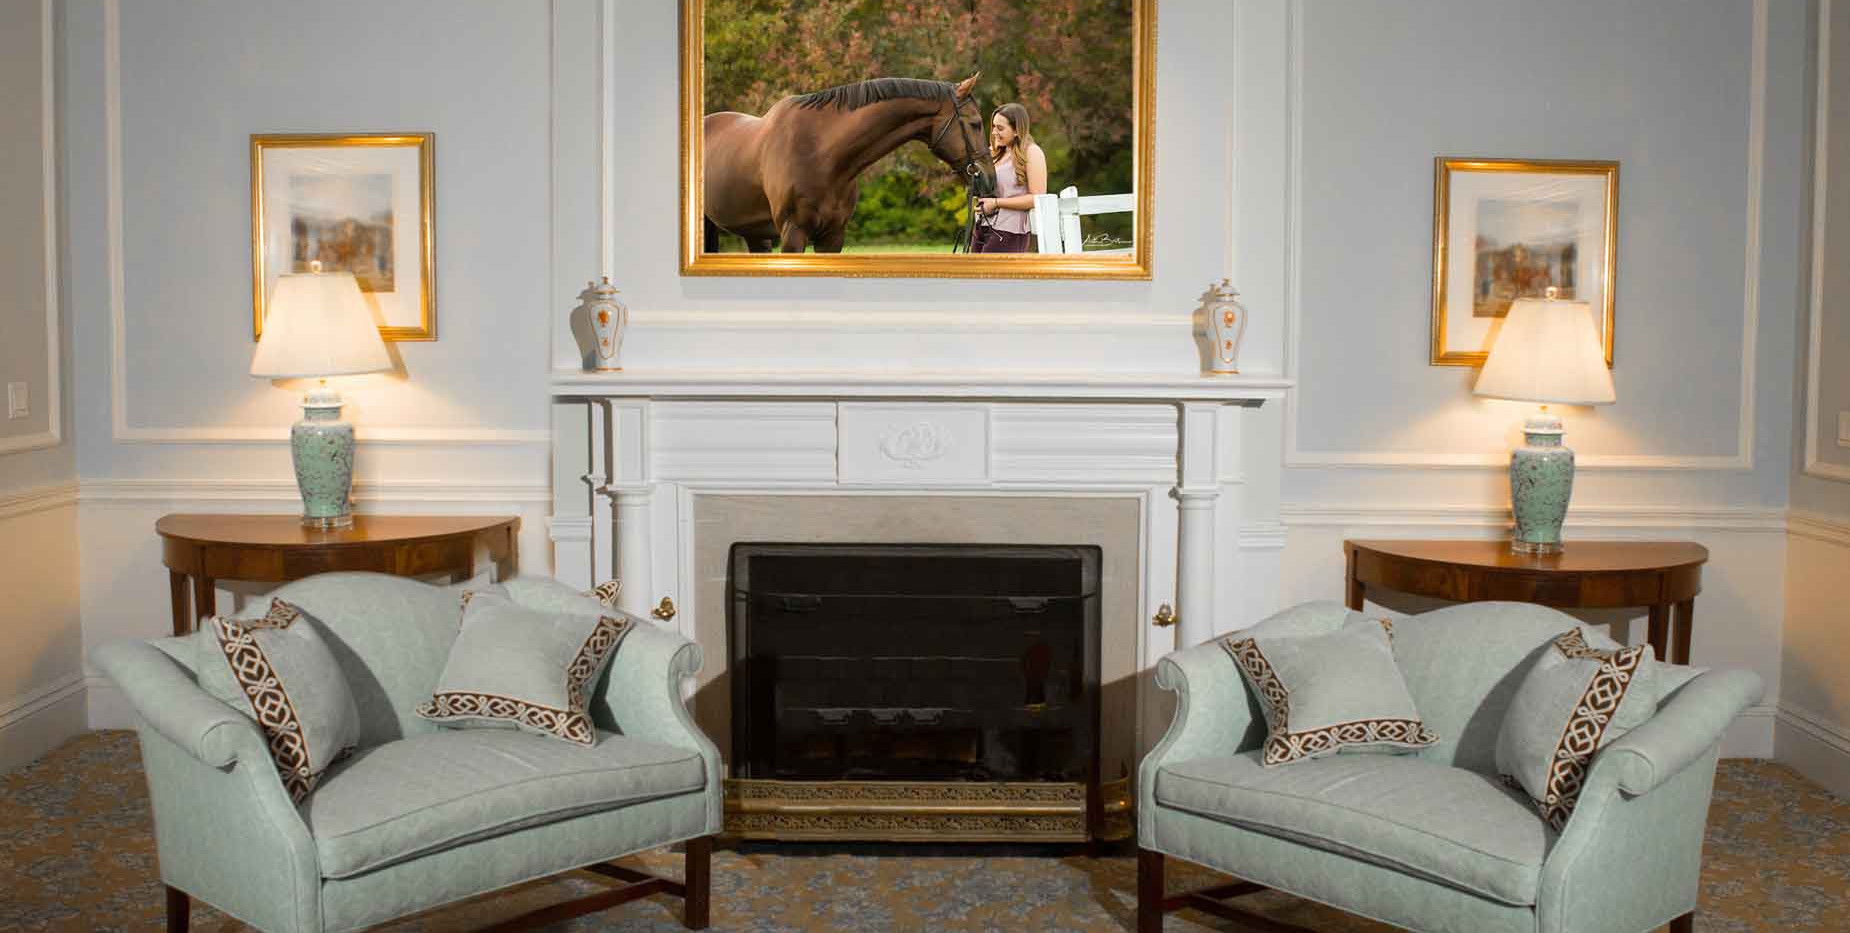 Formal living room - equestrian art